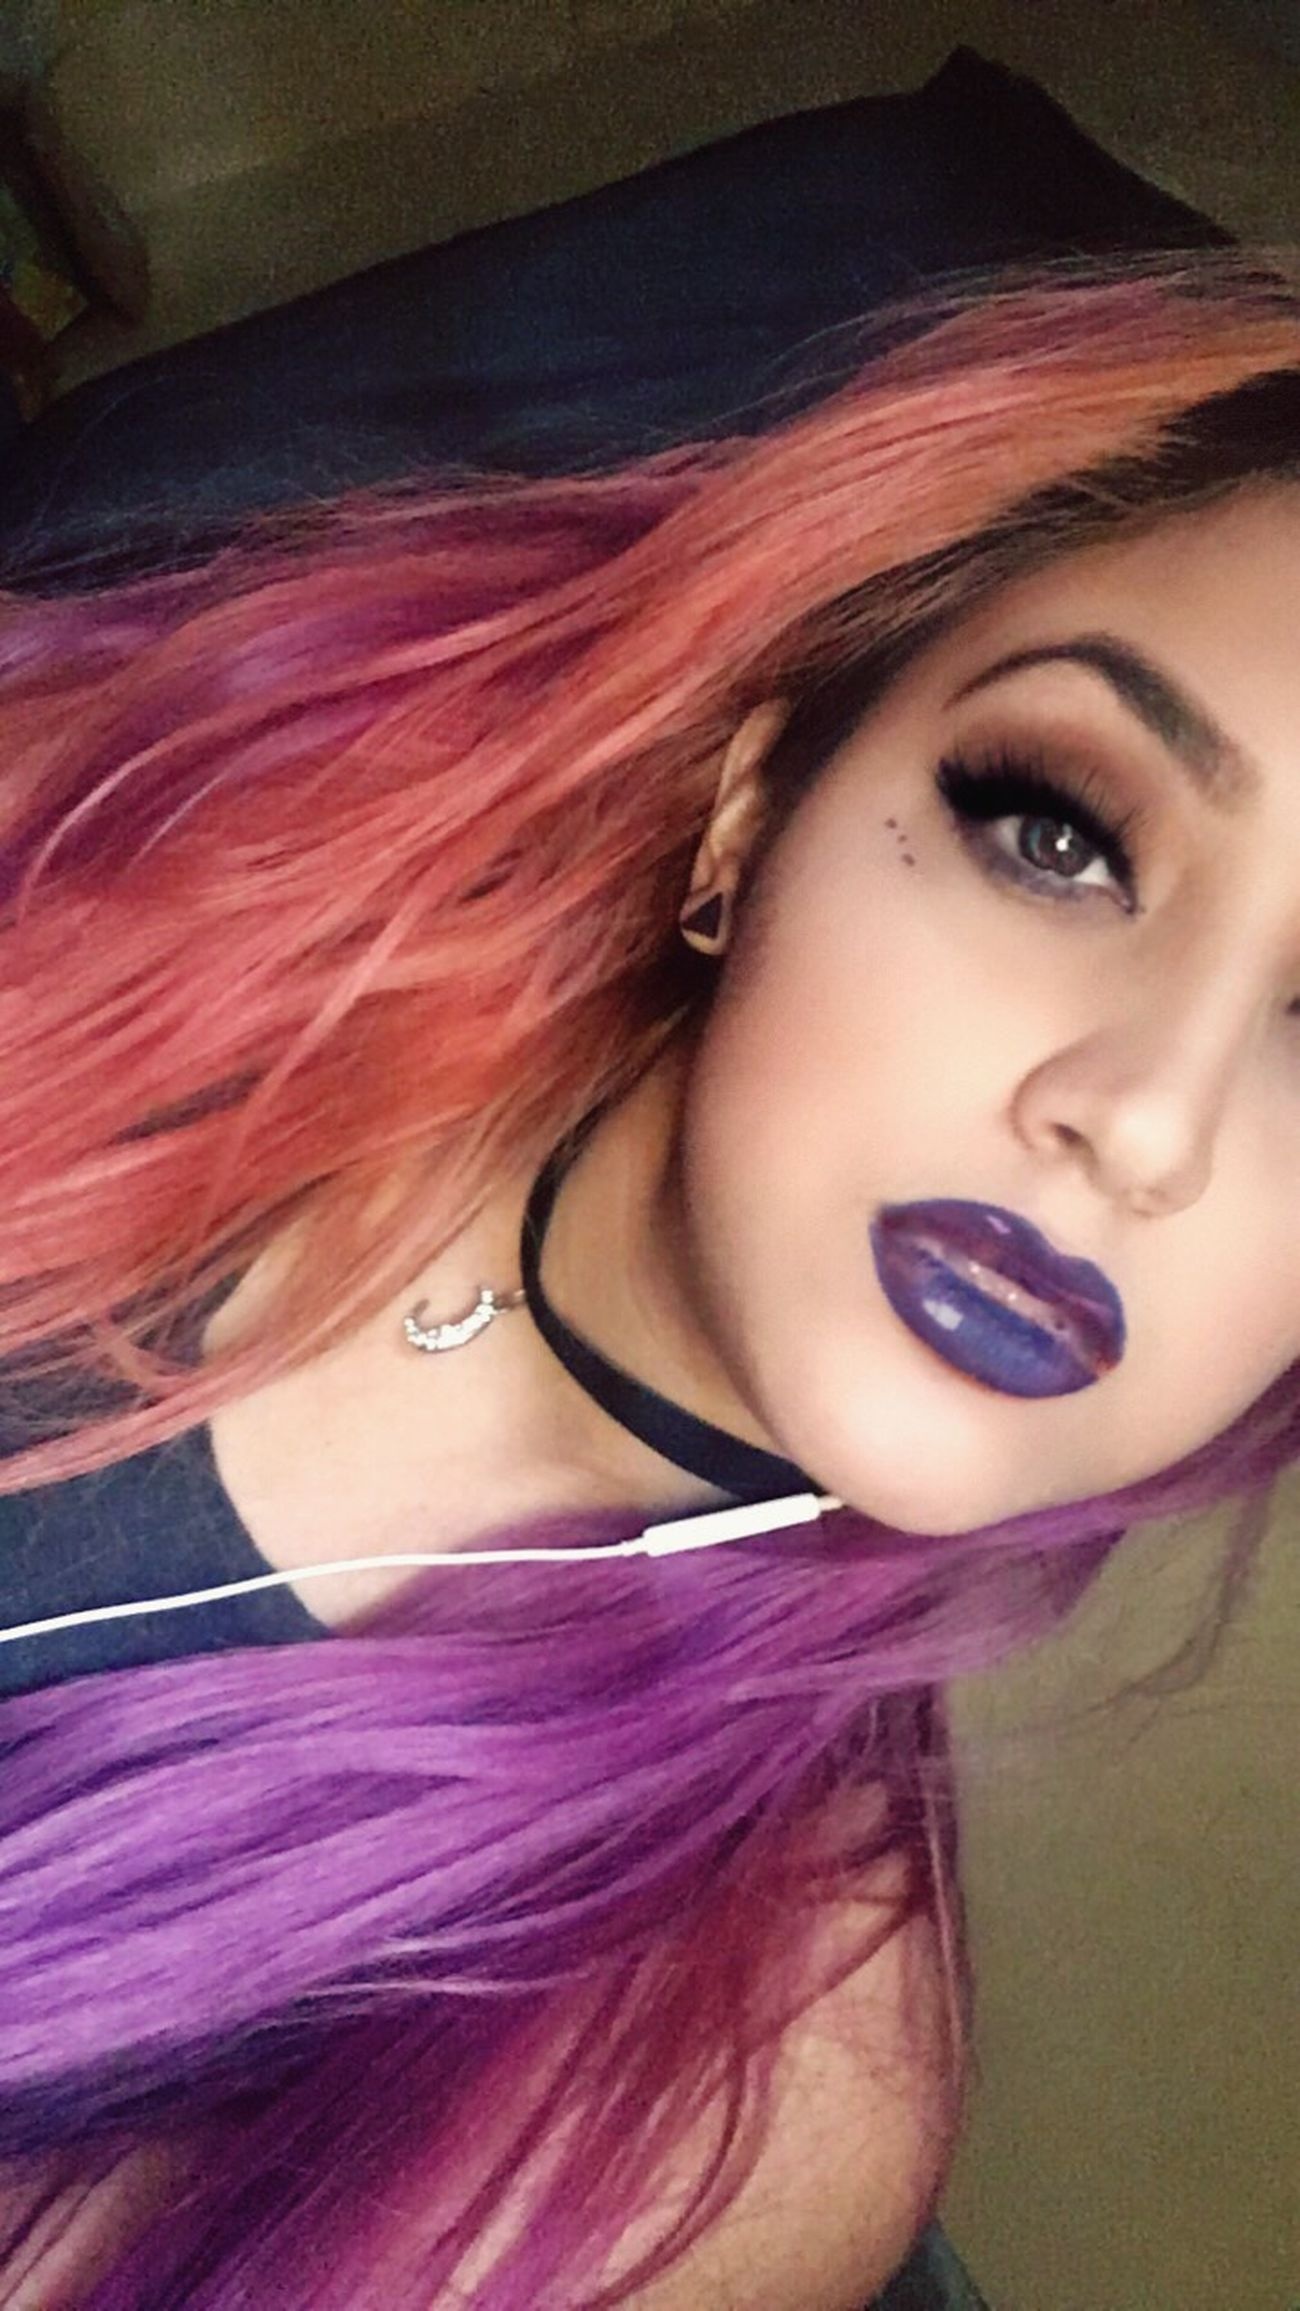 Tell me I'm pretty 🖤 Today's Hot Look That's Me Makeupoftheday Makeup Long Hair Dyed Hair Pout Purple Hair Pink Hair Girl Feeling Myself  Lovely Eyes Purple Lipstick Eye Lashes